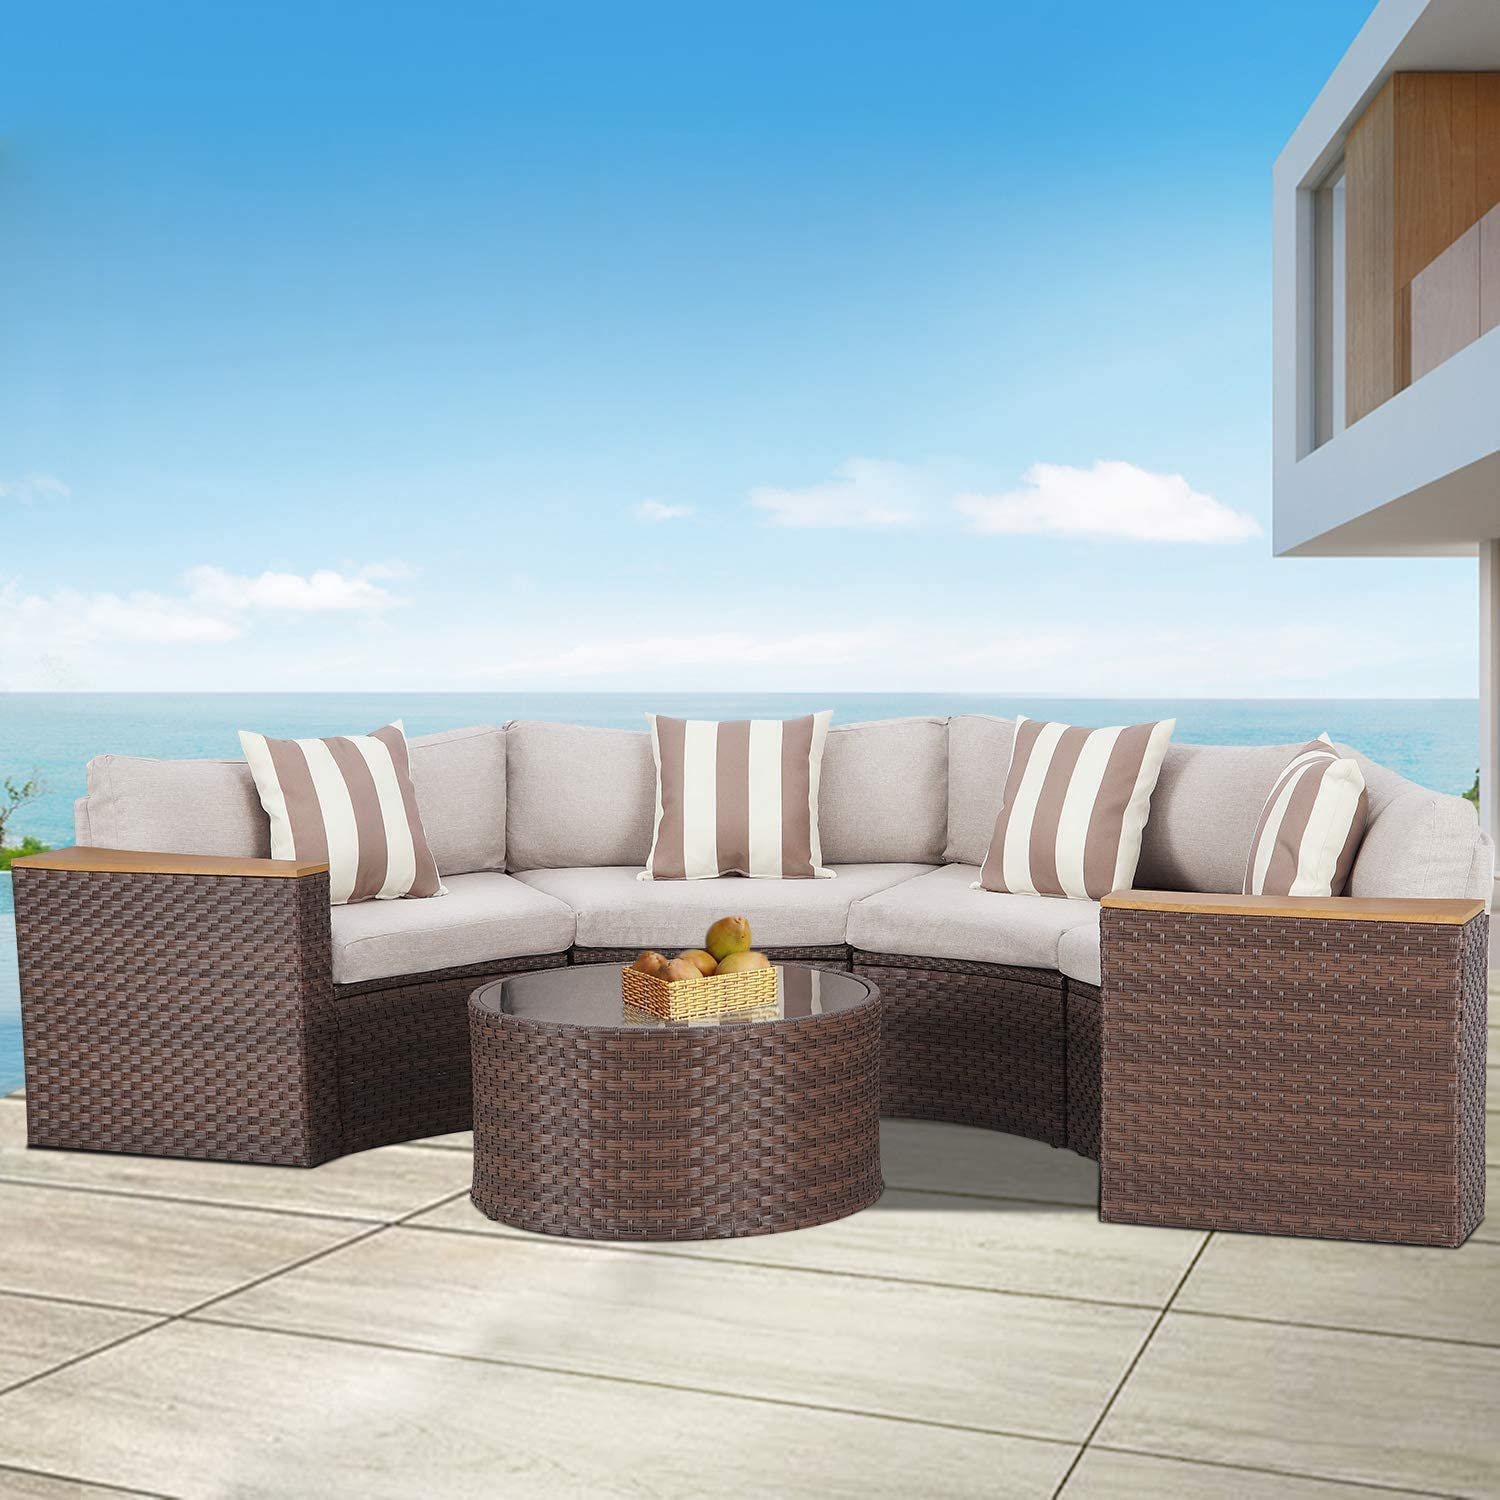 Cemeon Outdoor Furniture Patio 5-Piece Sectional Half-Moon Sofa All Weather Brown Wicker Conversation Set with Round Tempered Glass Table and Brown Cushions